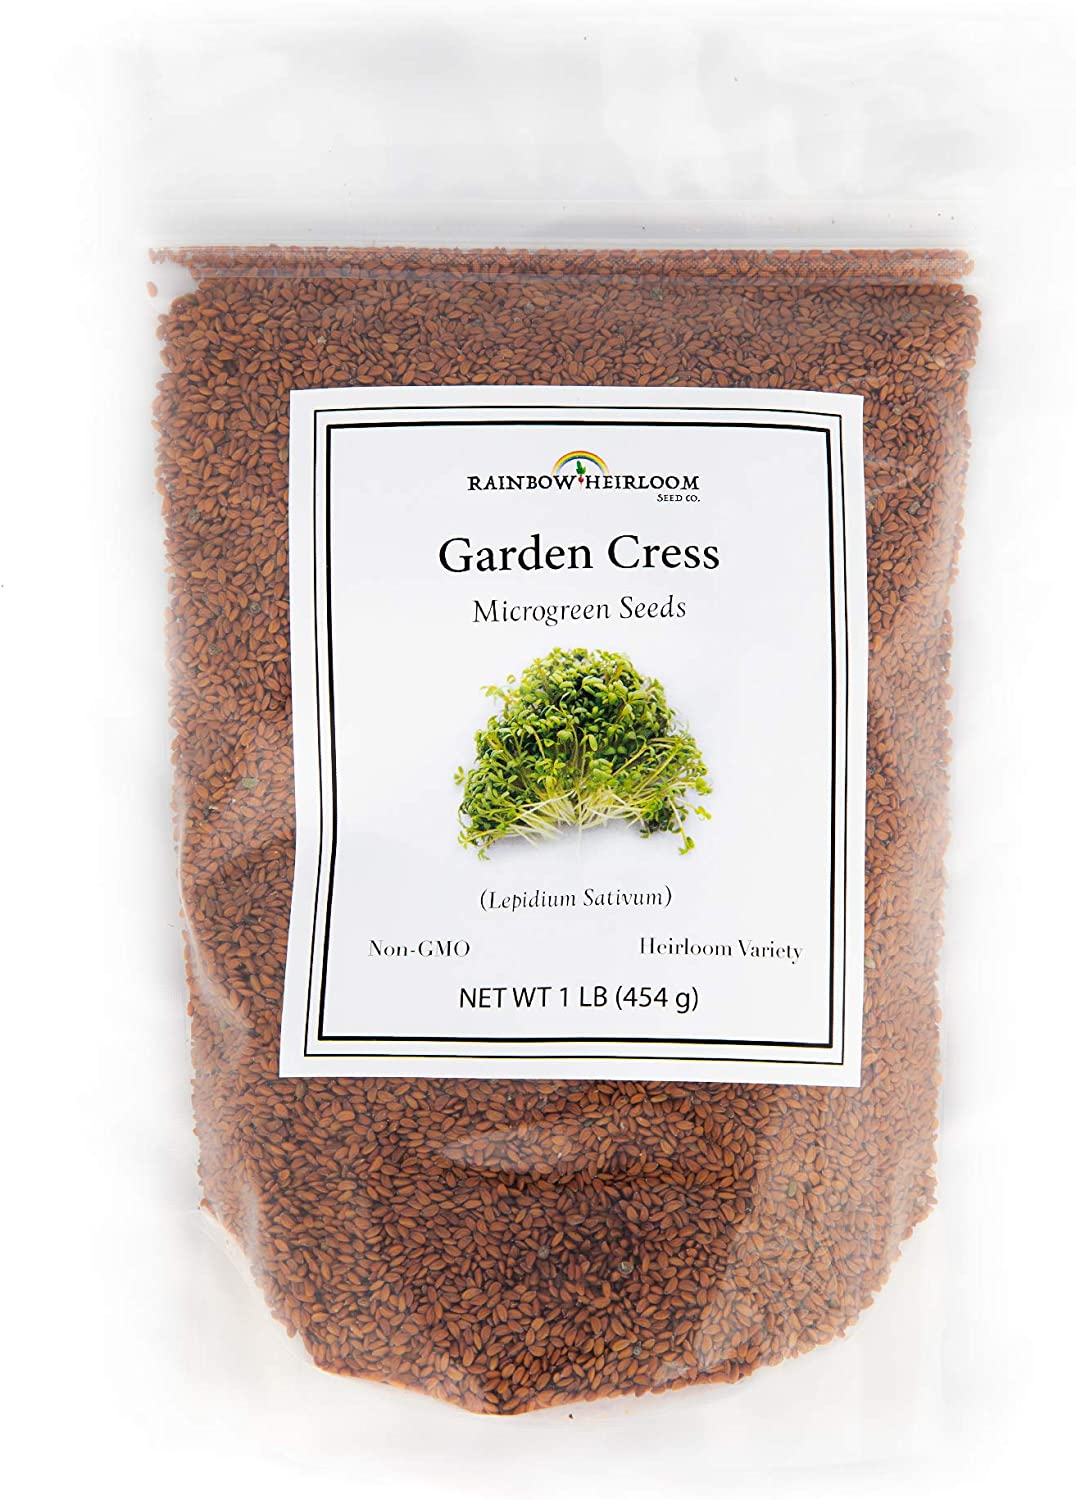 Garden Cress Seeds for Microgreens & Planting Outdoors | 1 LB Bulk Lepidium sativum Seeds | Non GMO Heirloom Variety | Rainbow Heirloom Seed Co.